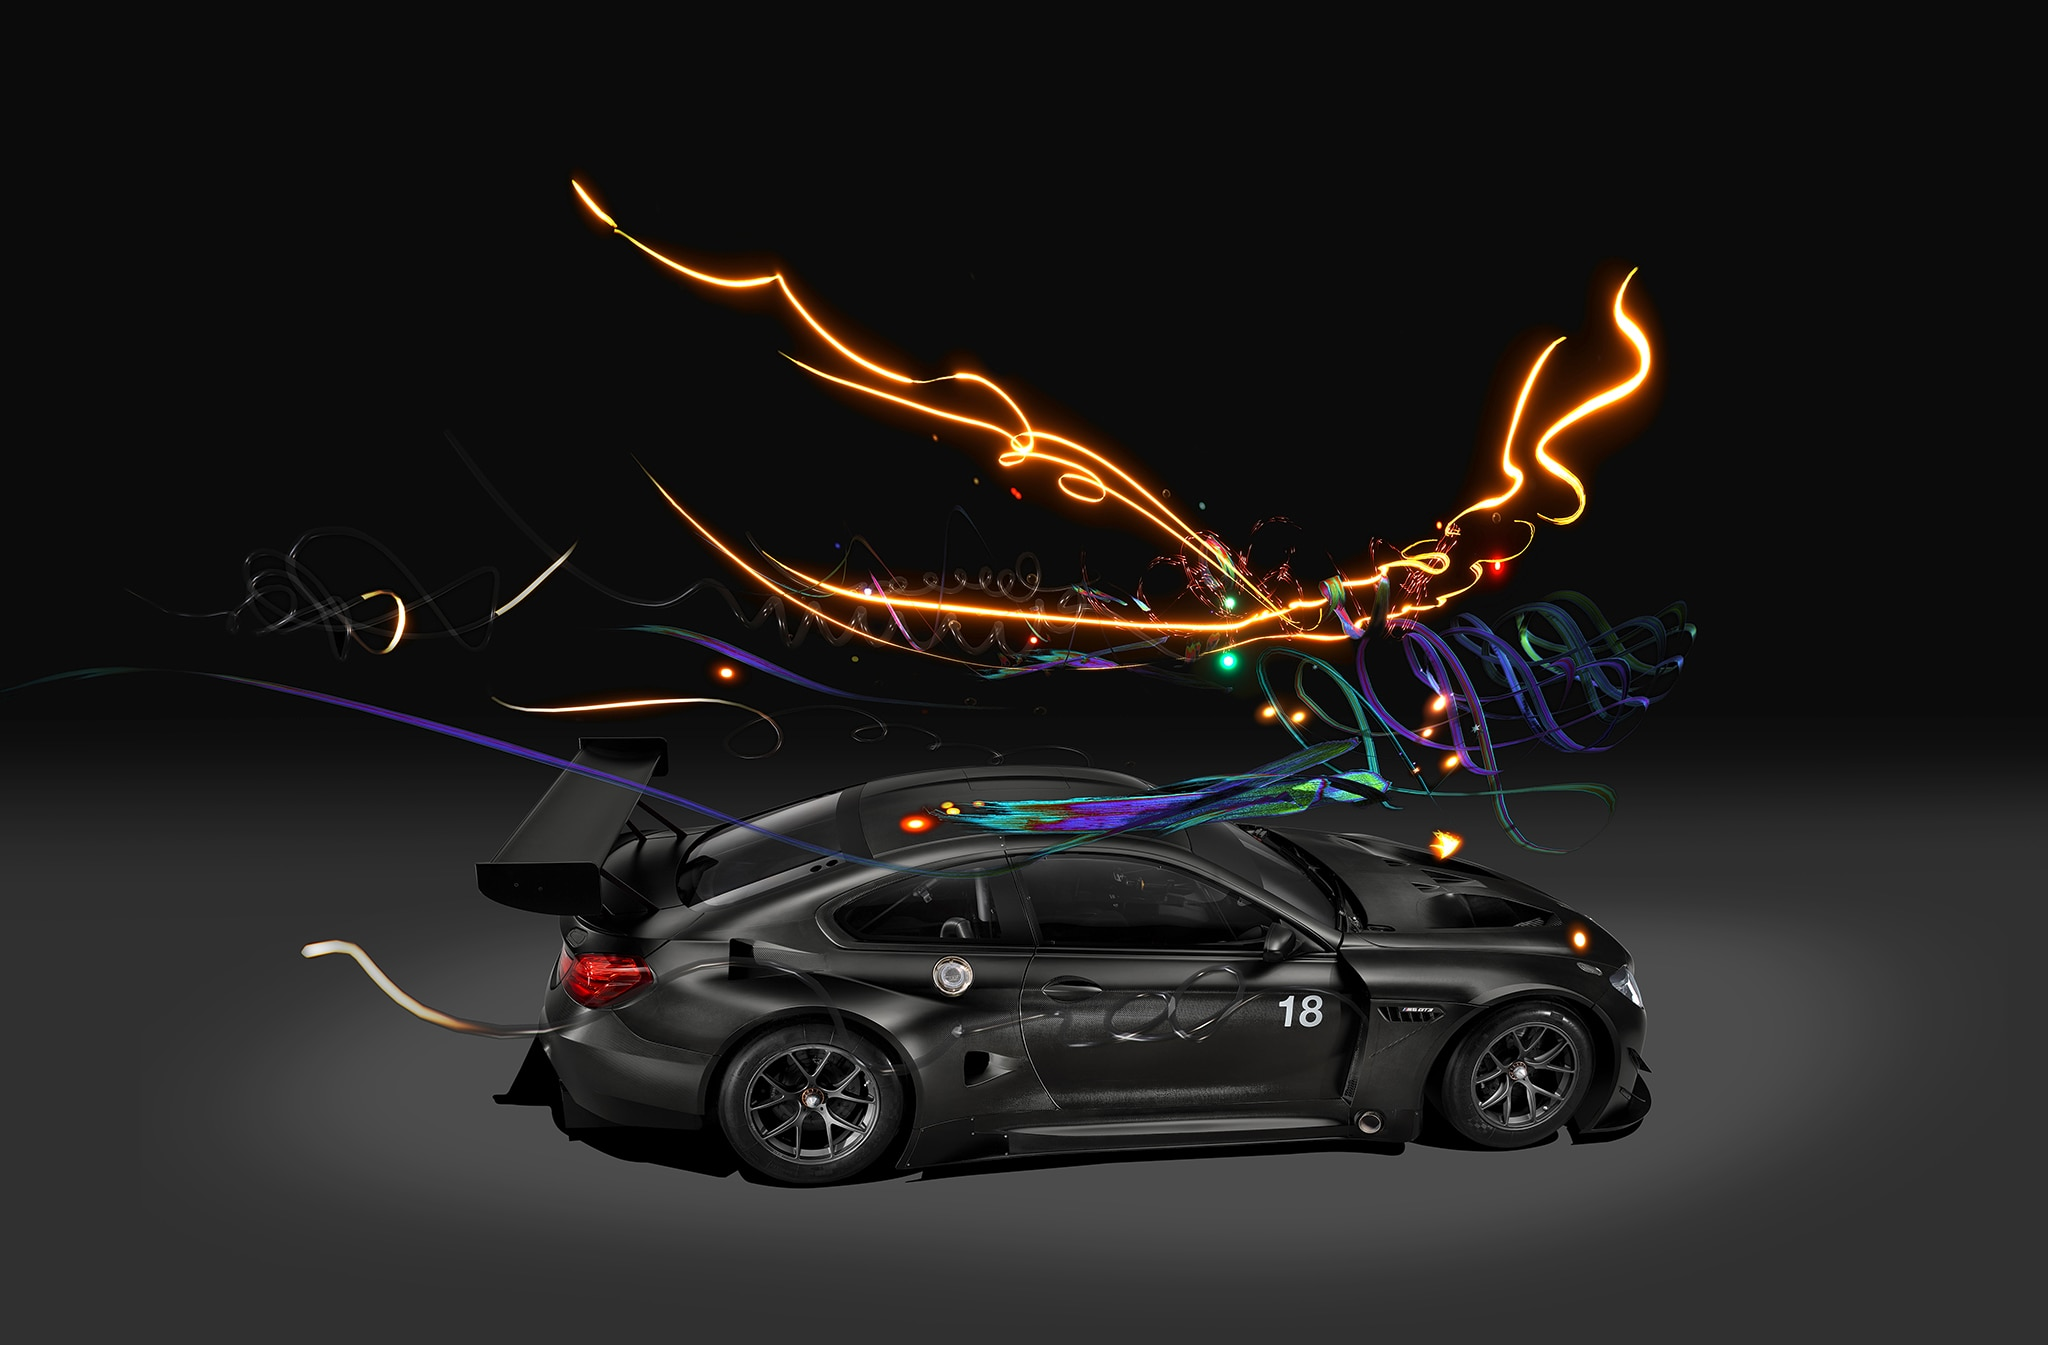 2017 Bmw M6 Gt3 Art Car Goes Digital Automobile Magazine